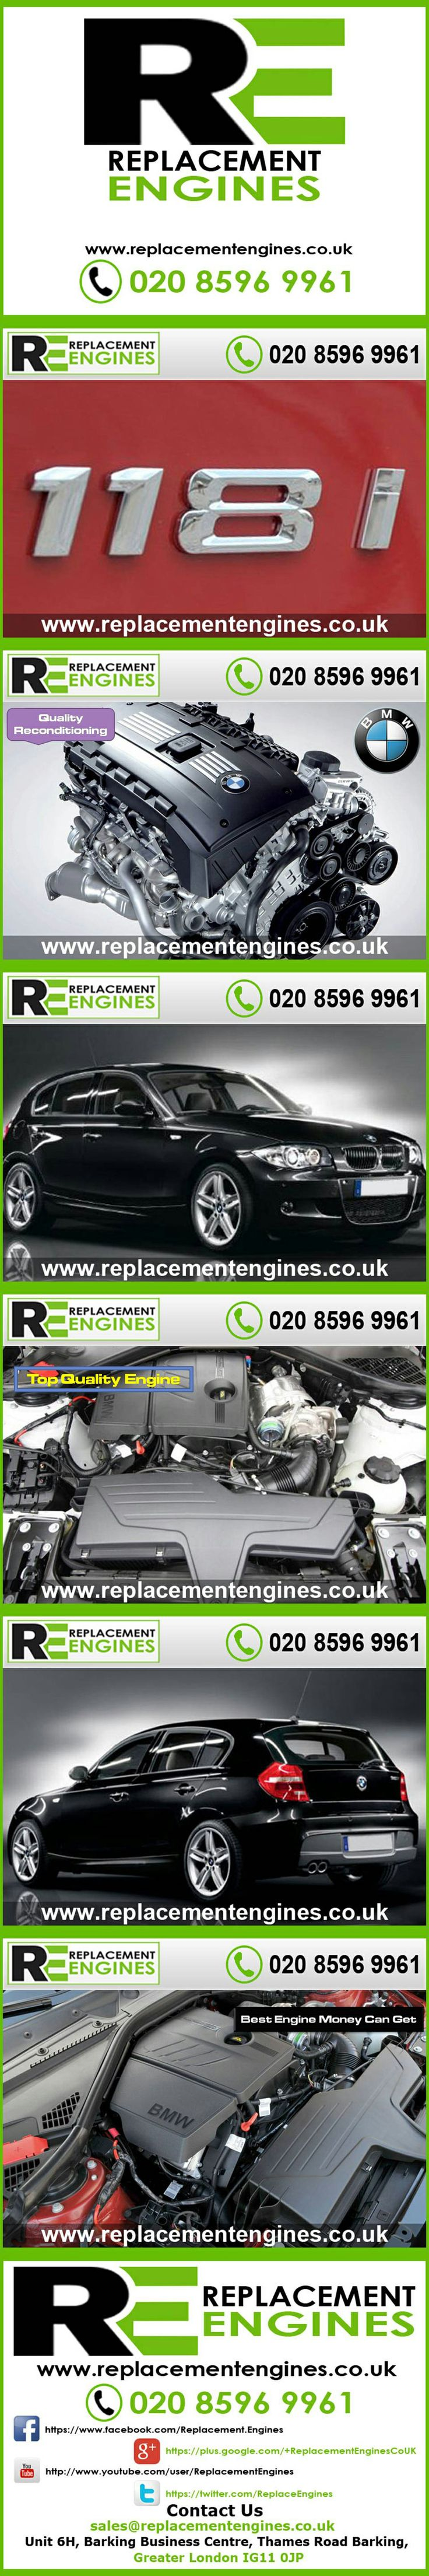 BMW 118i engines for sale at the cheapest prices, we have low mileage used & reconditioned engines in stock now, ready to be delivered to anywhere in the UK or overseas, visit Replacement Engines website here.